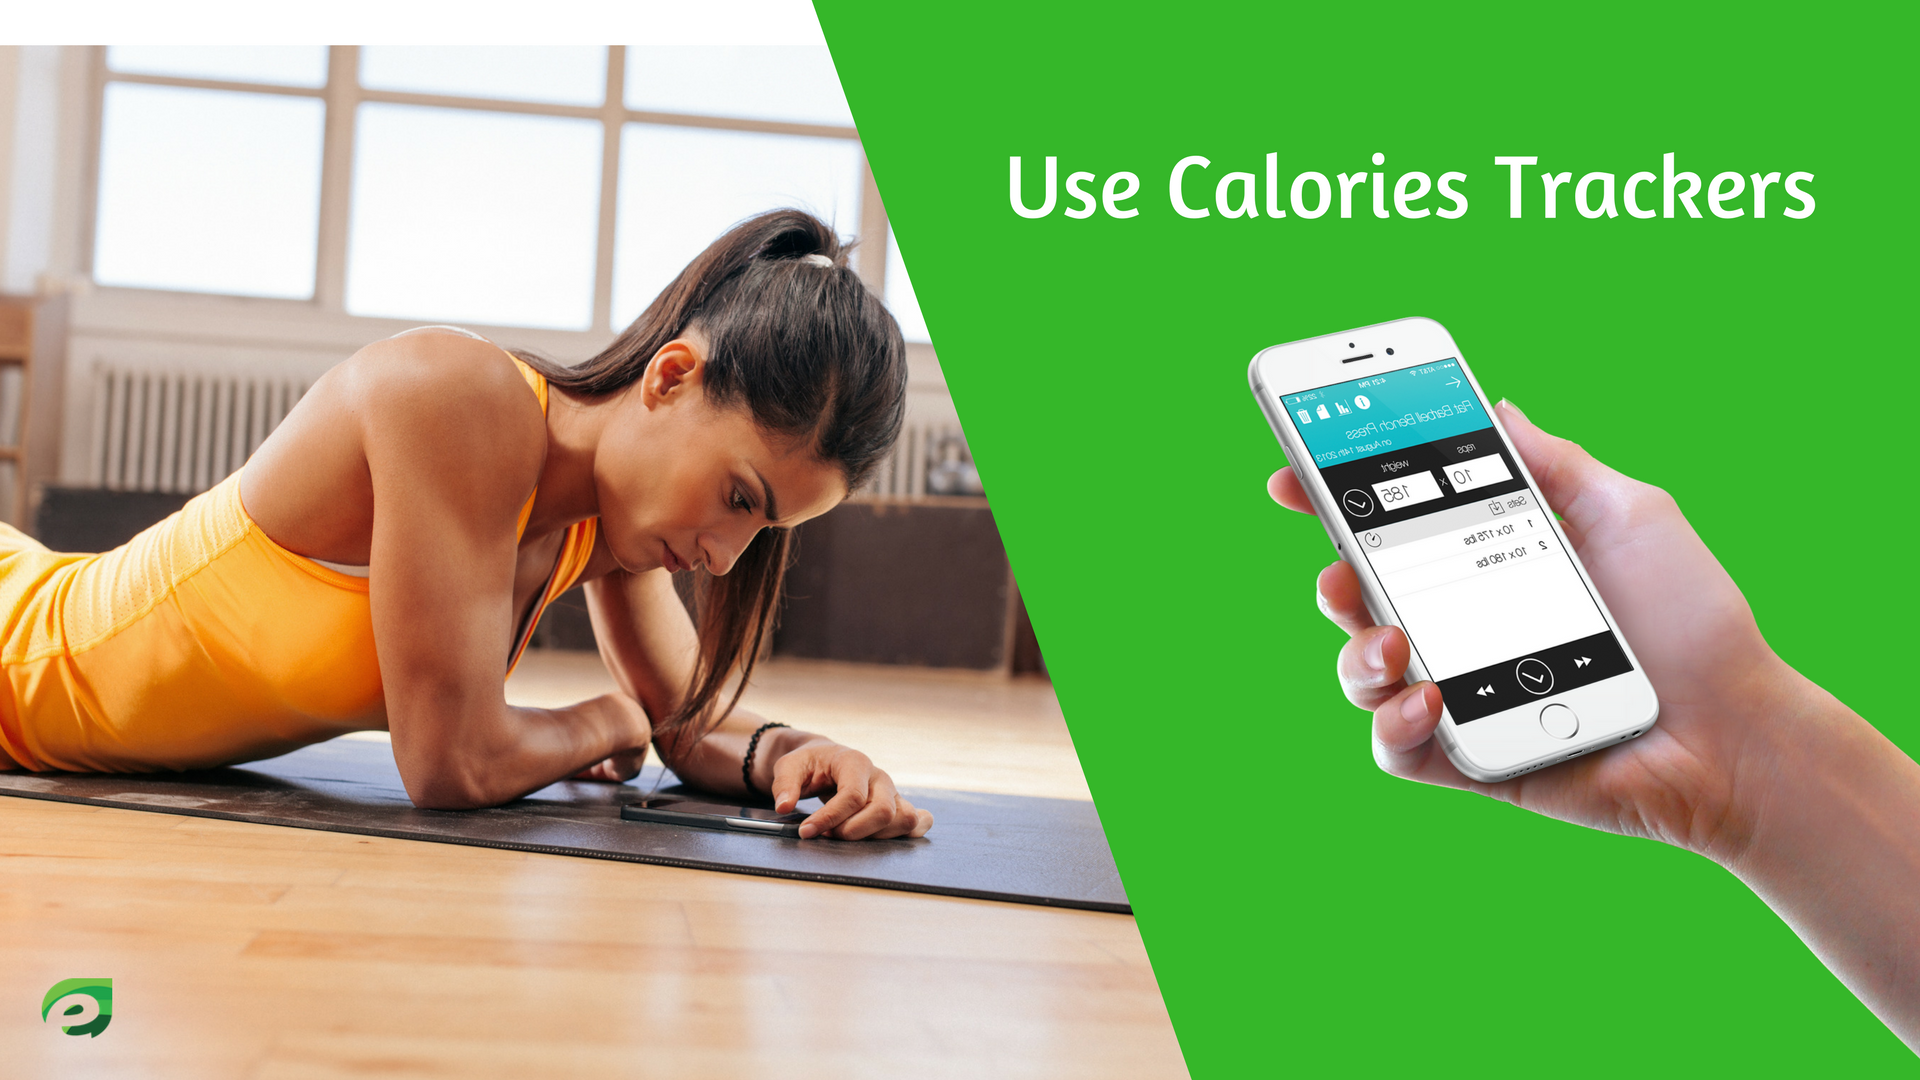 Calories Tracker - Weight Loss Using Phone